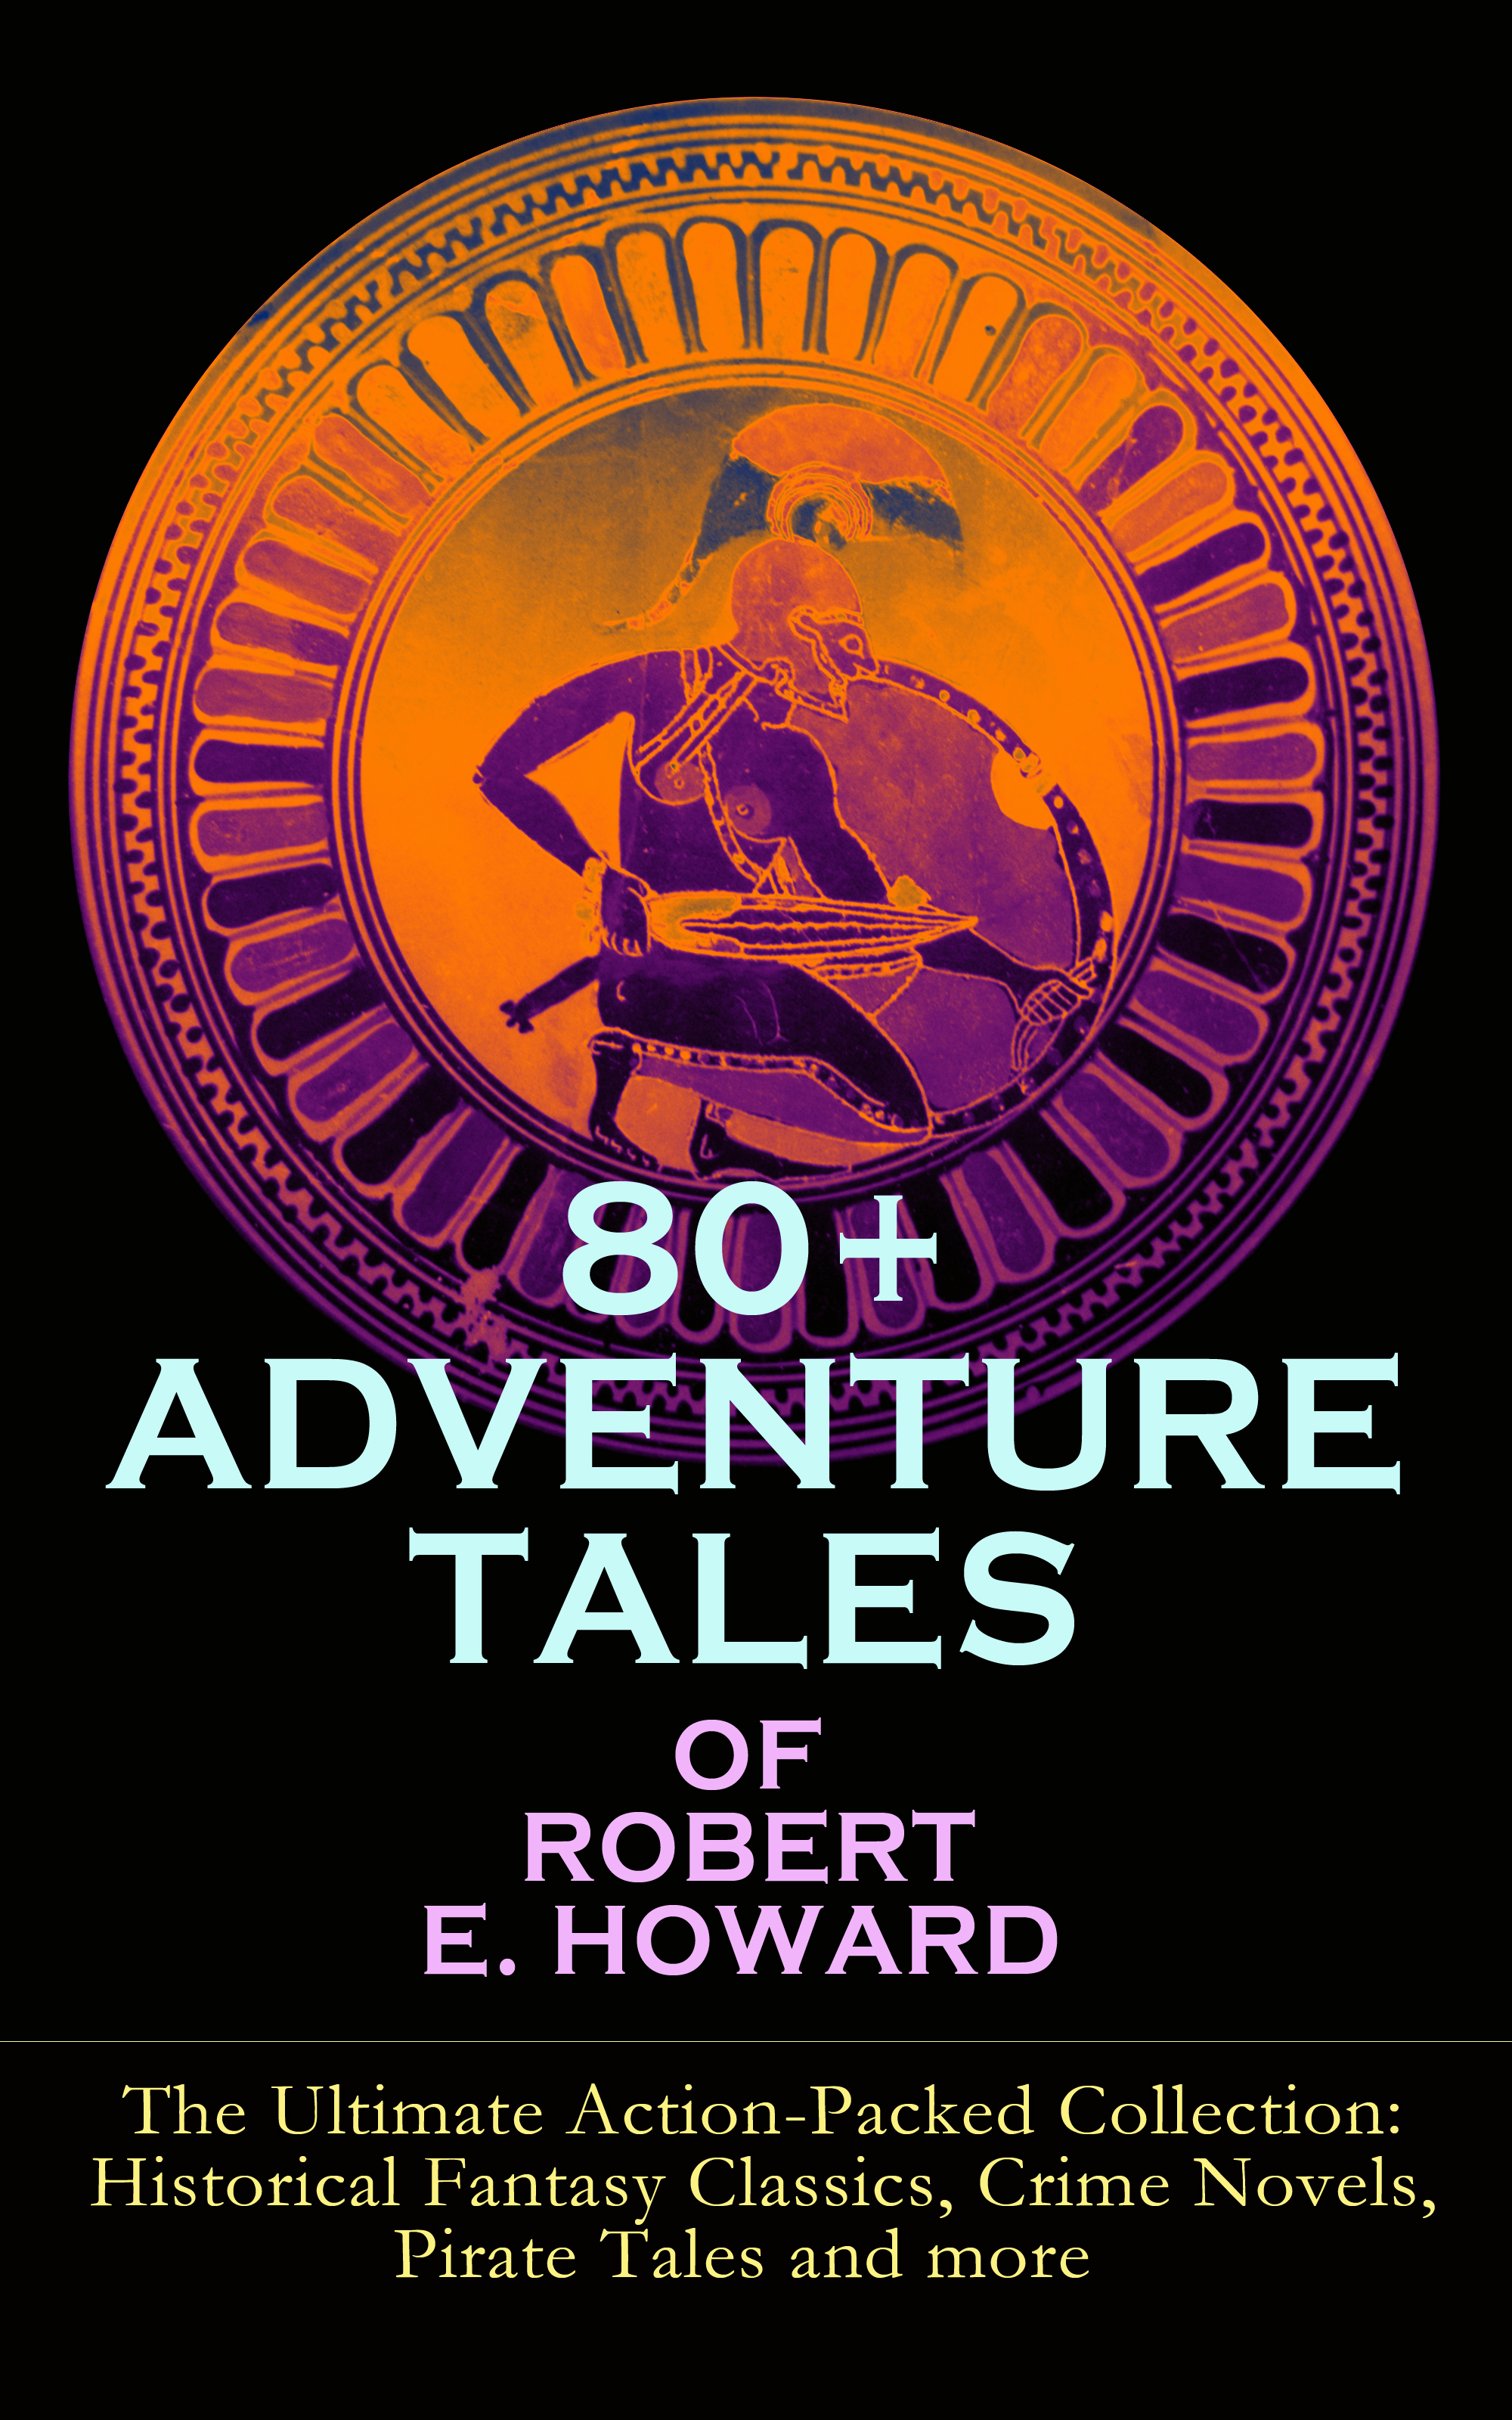 Robert E. Howard 80+ ADVENTURE TALES OF ROBERT E. HOWARD - The Ultimate Action-Packed Collection cd sweet action the ultimate story